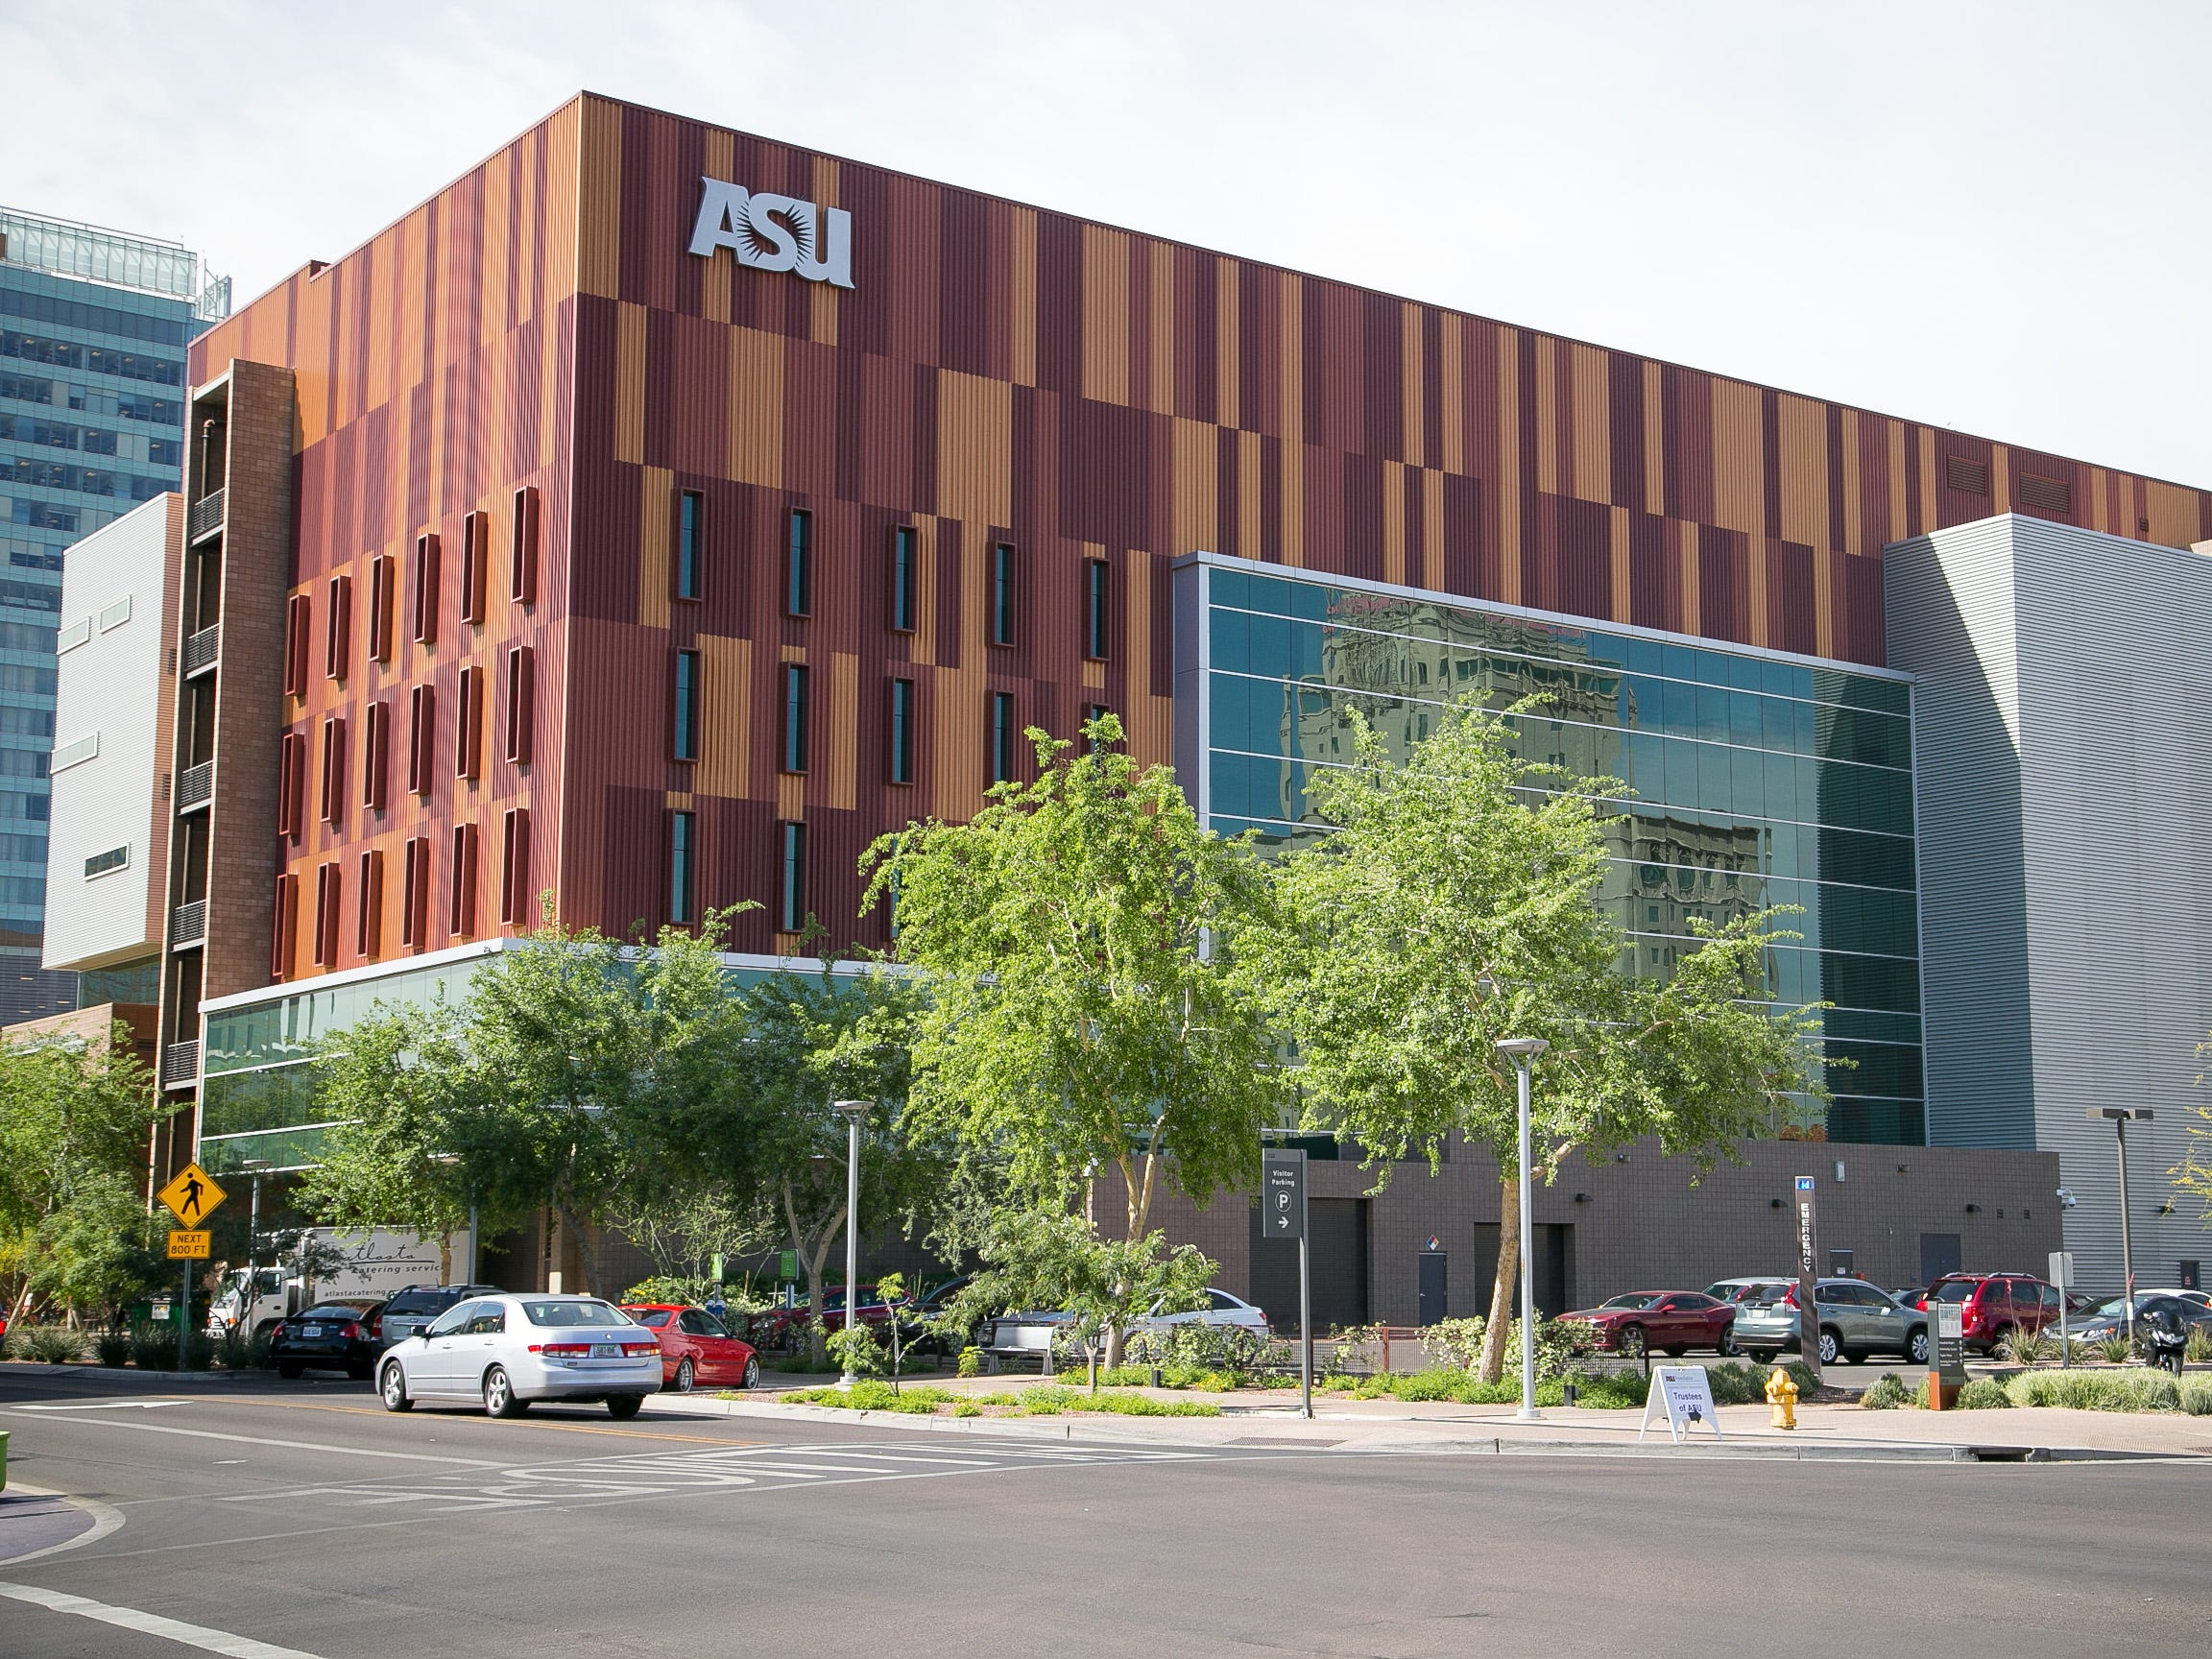 The Walter Cronkite School of Journalism and Mass Communication at the ASU Downtown Phoenix Campus on April 11, 2014. The building opened in 2008.